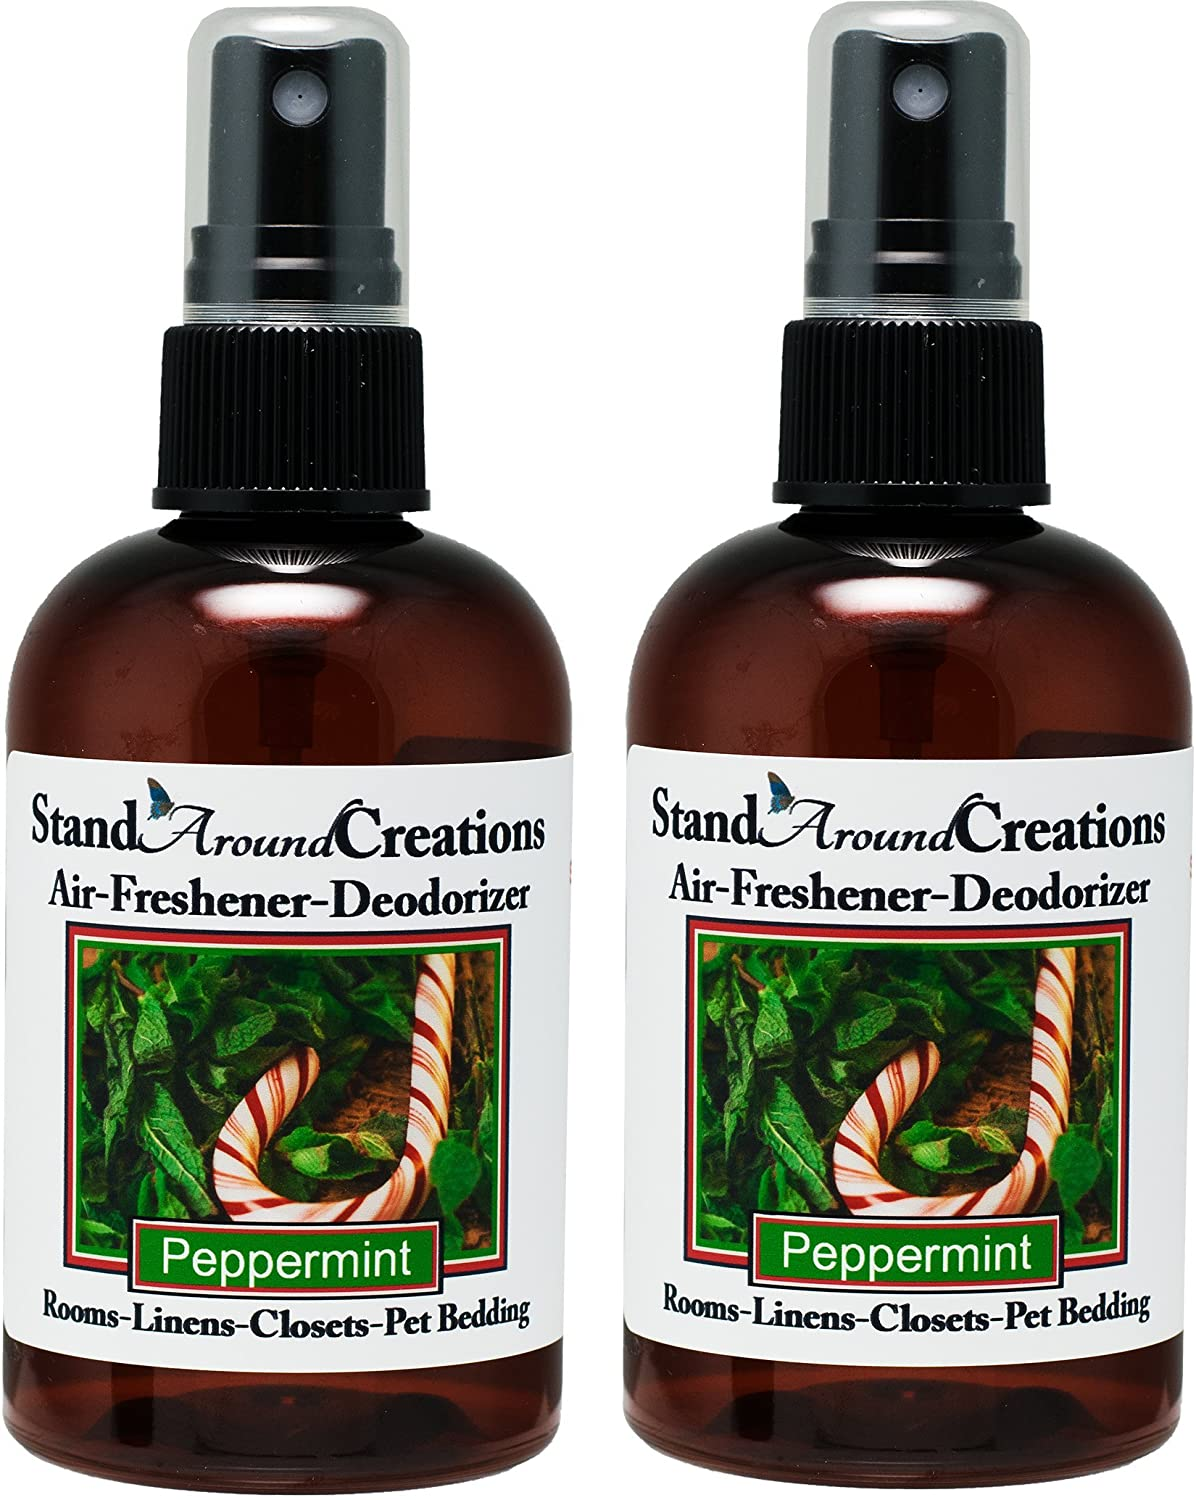 Concentrated Spray Air Freshener/Deodorizer   Peppermint  Great For: Cars,  Offices, Closets, Air Conditioners, Pet Beds, Yoga Mats, Litter Boxes, ...